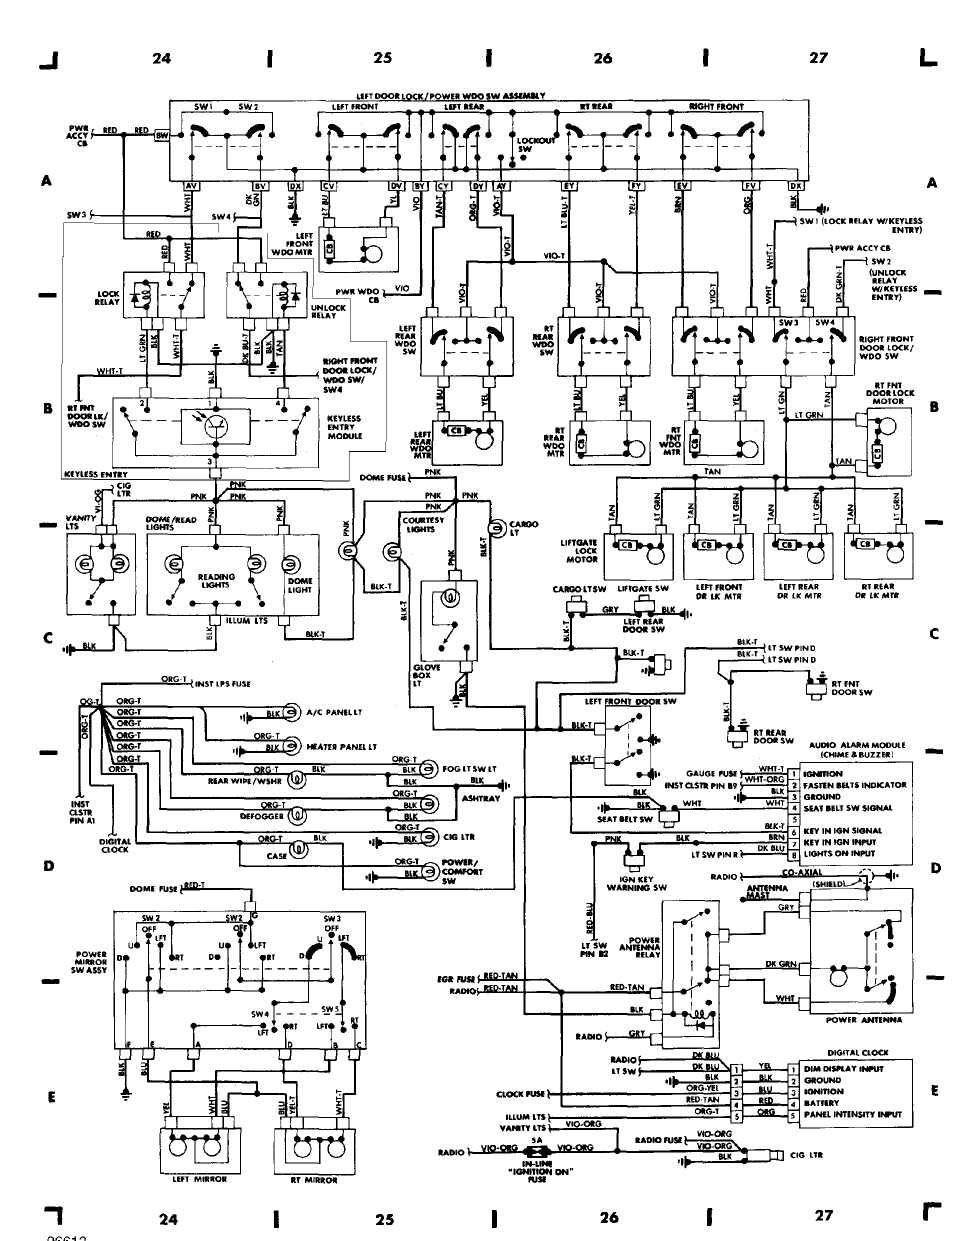 wiring_diagrams_html_61f5e0ad 2000 jeep xj wiring diagram 1998 jeep cherokee wiring diagrams pdf 1995 jeep grand cherokee tail light wiring diagram at bayanpartner.co